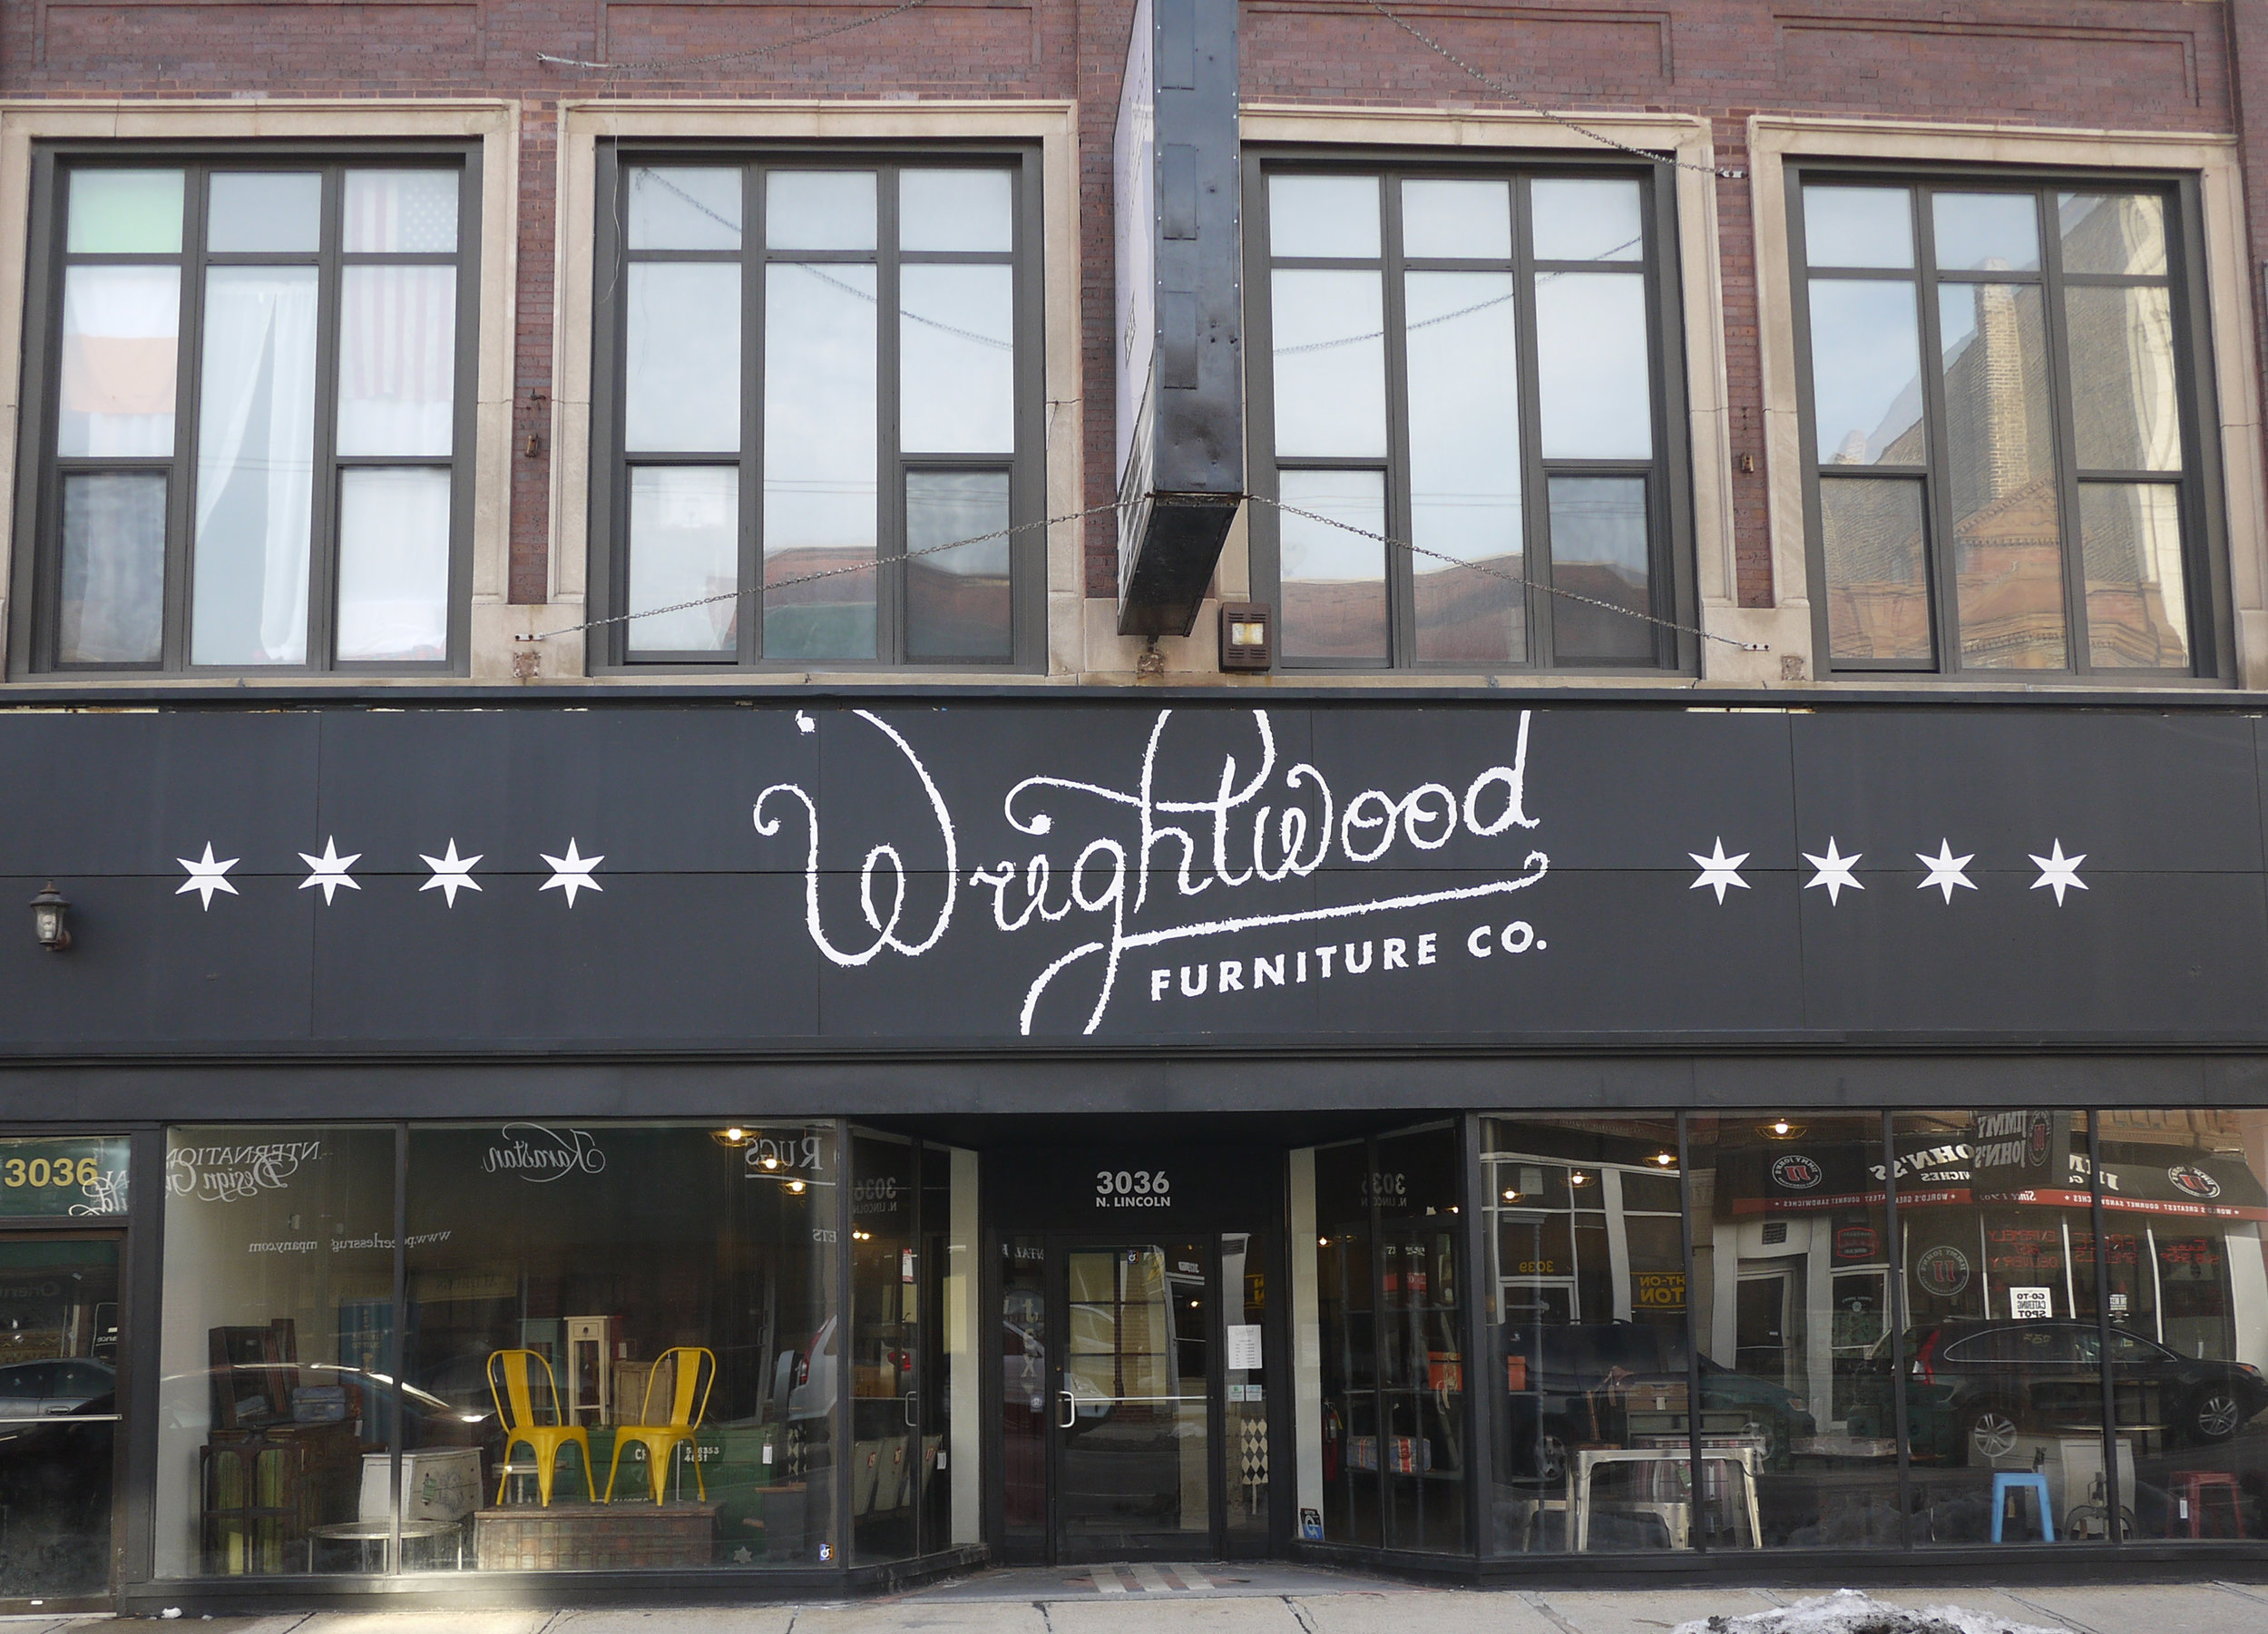 Wrightwood Furniture, Lincoln Park (Chicago)